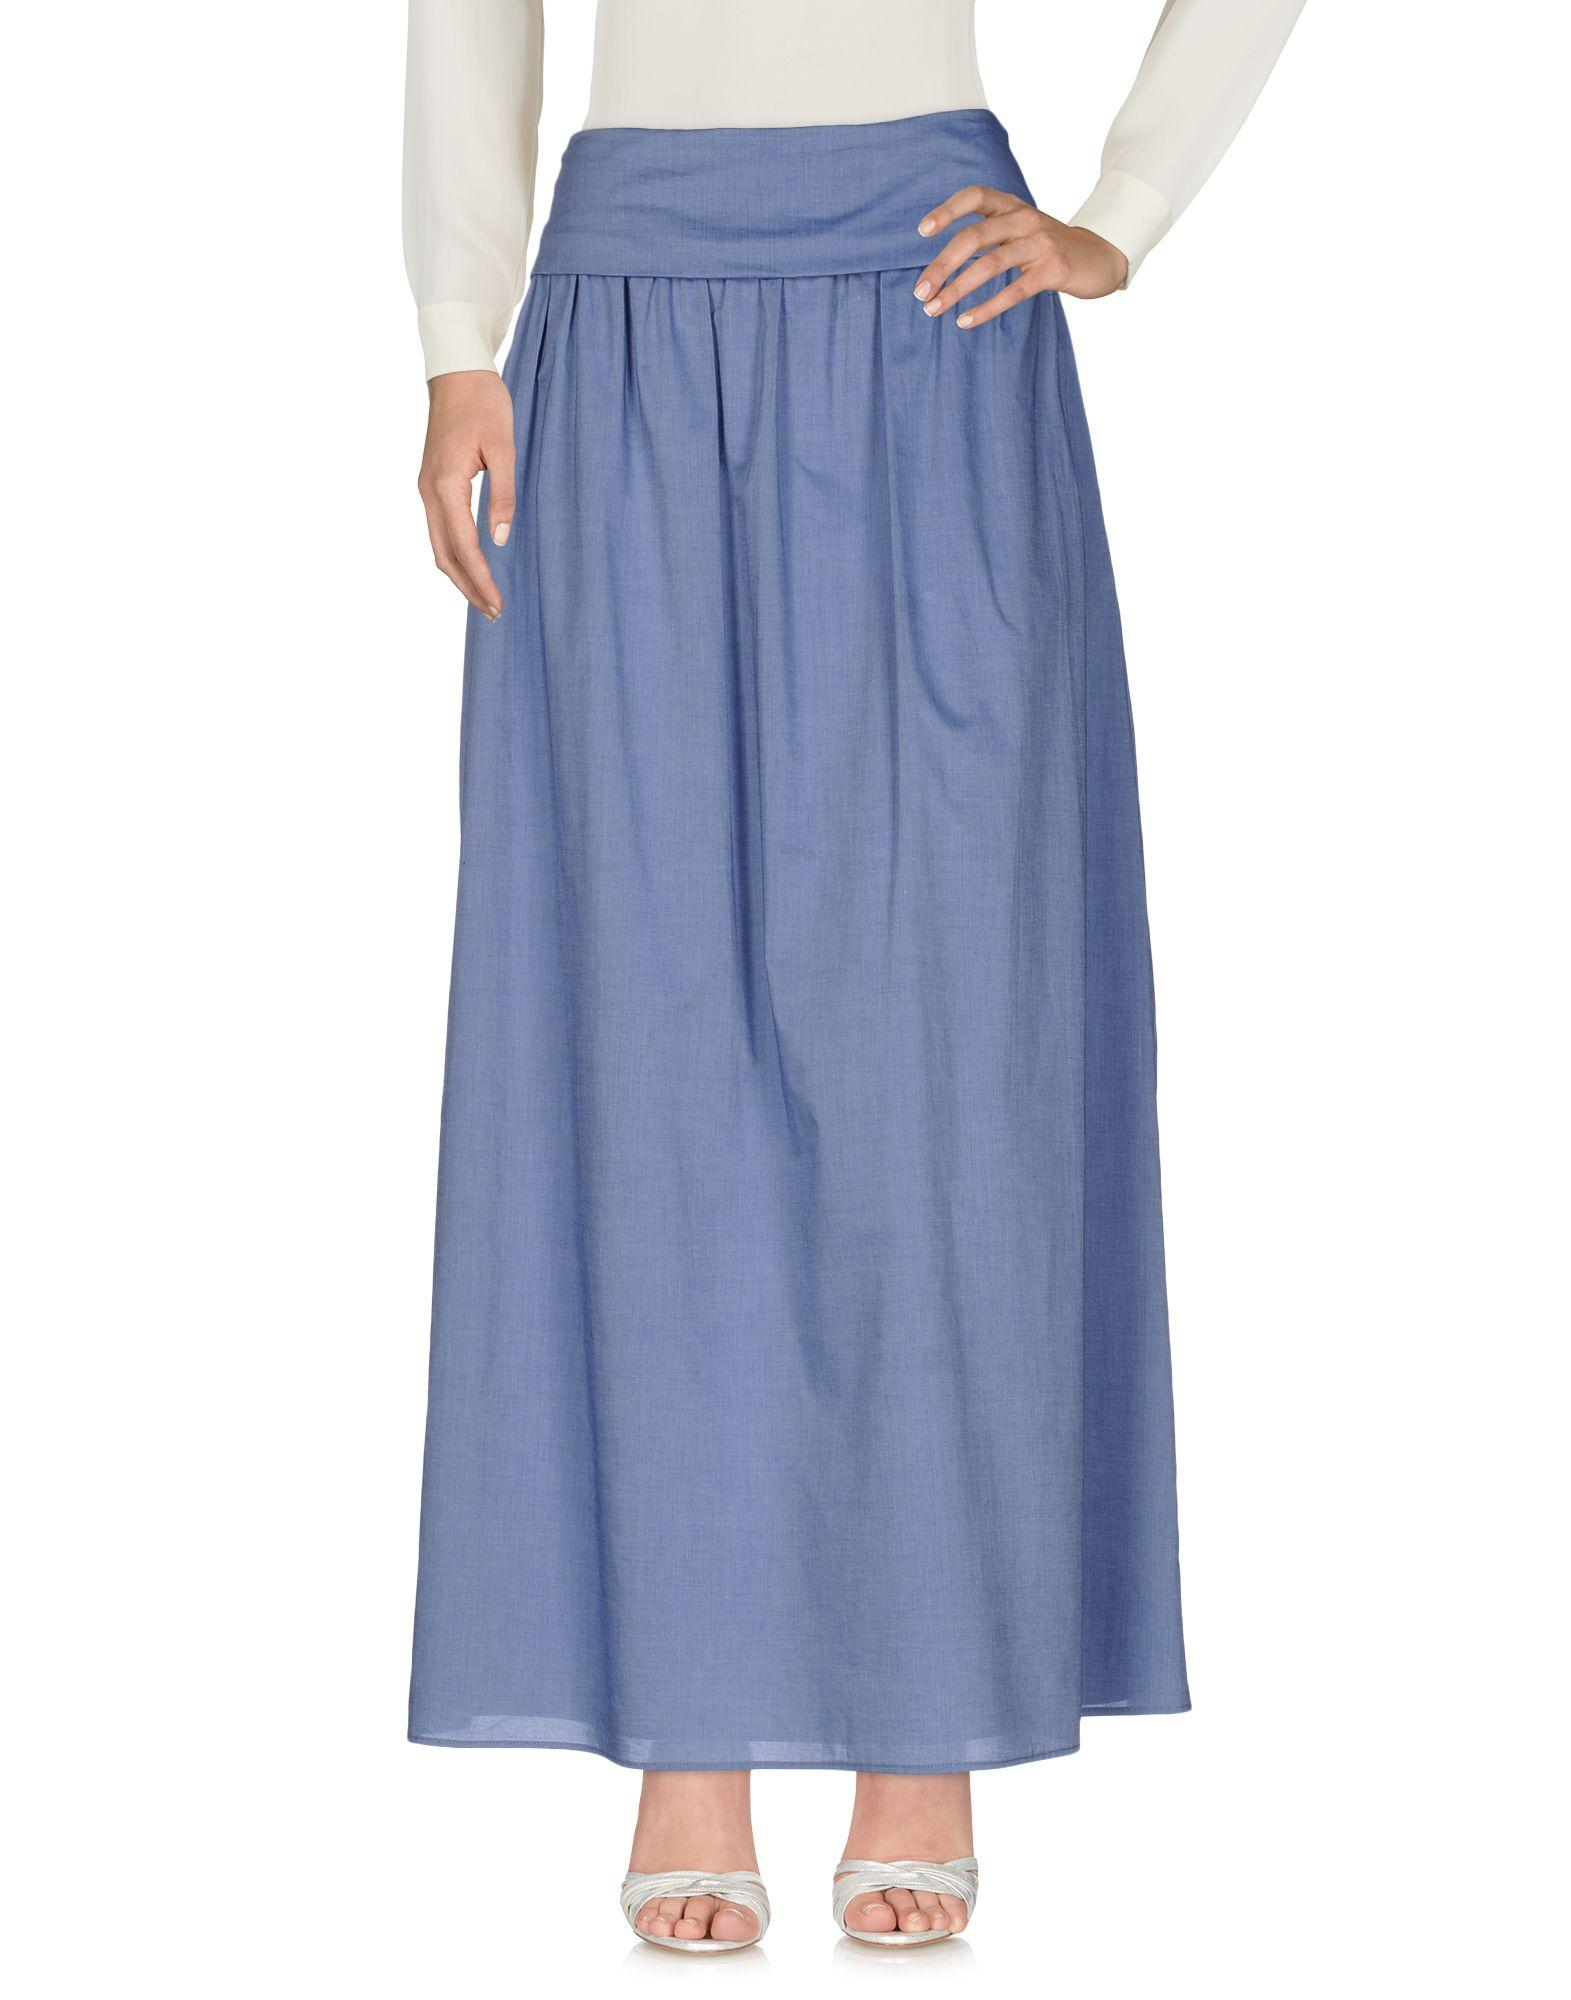 Fabiana Filippi Maxi Skirts In Pastel Blue